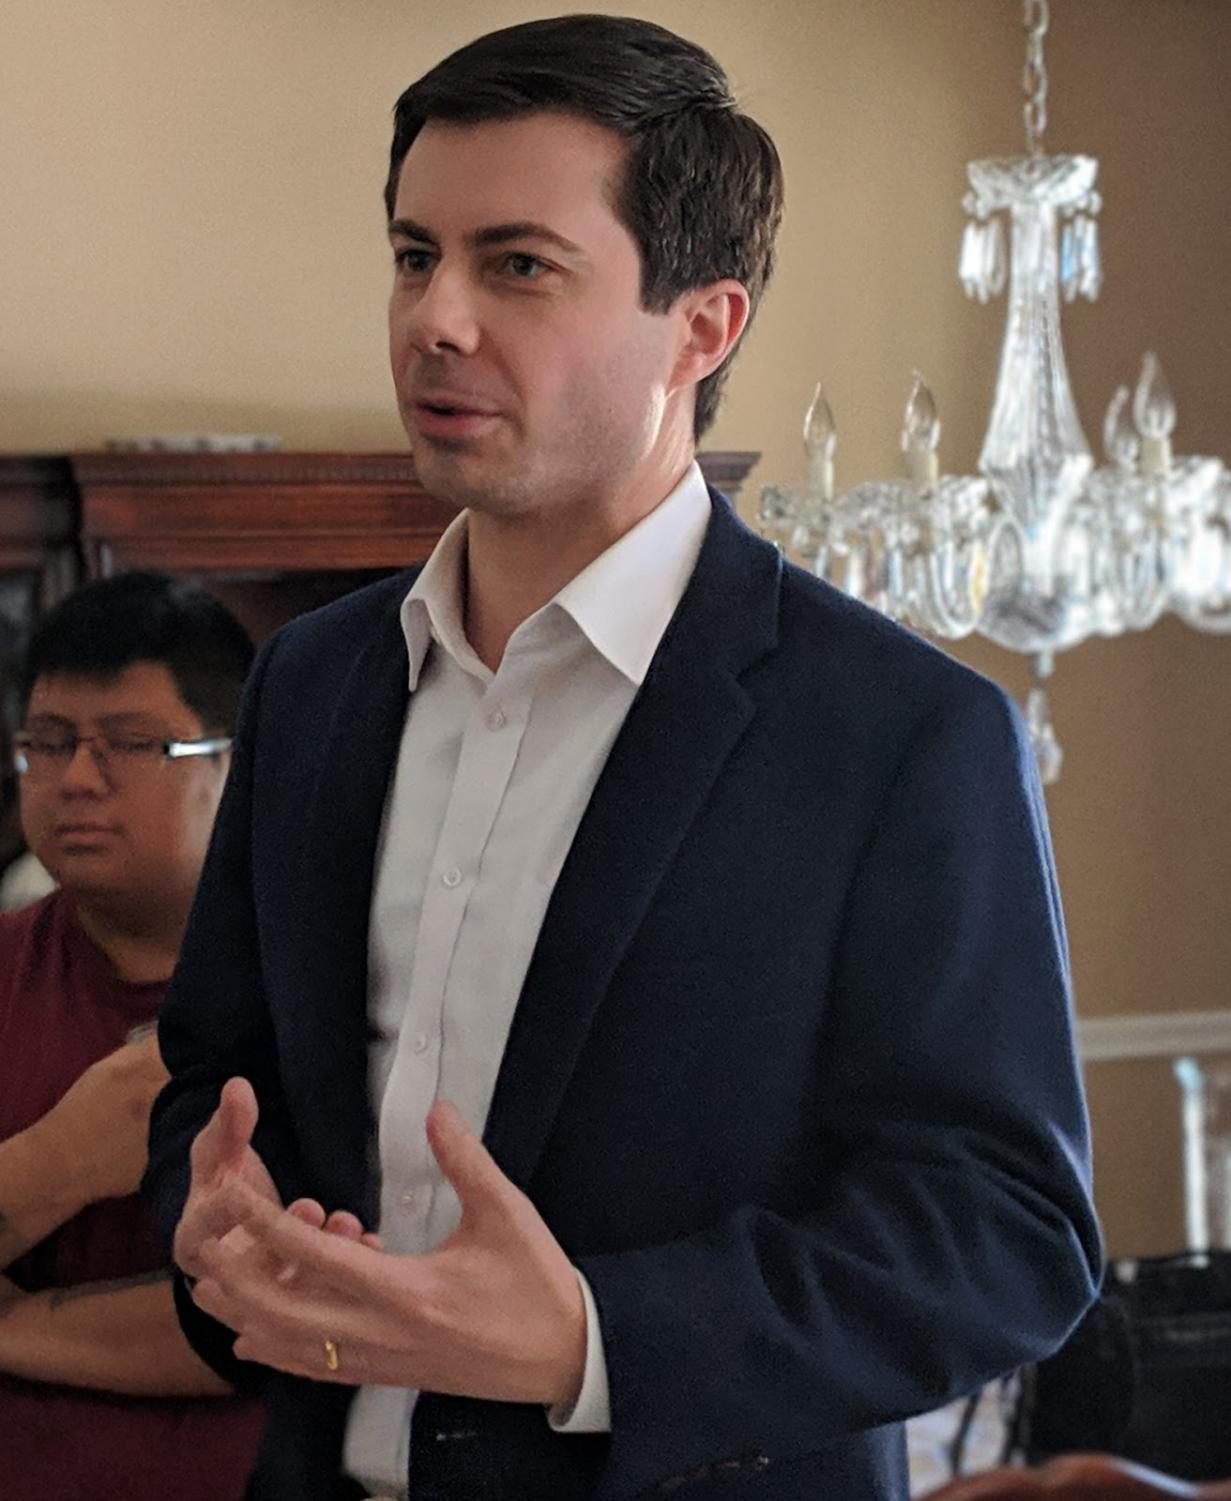 Buttigieg announced his 2020 presidential campaign. The 37 year-old would be the youngest U.S. President ever.